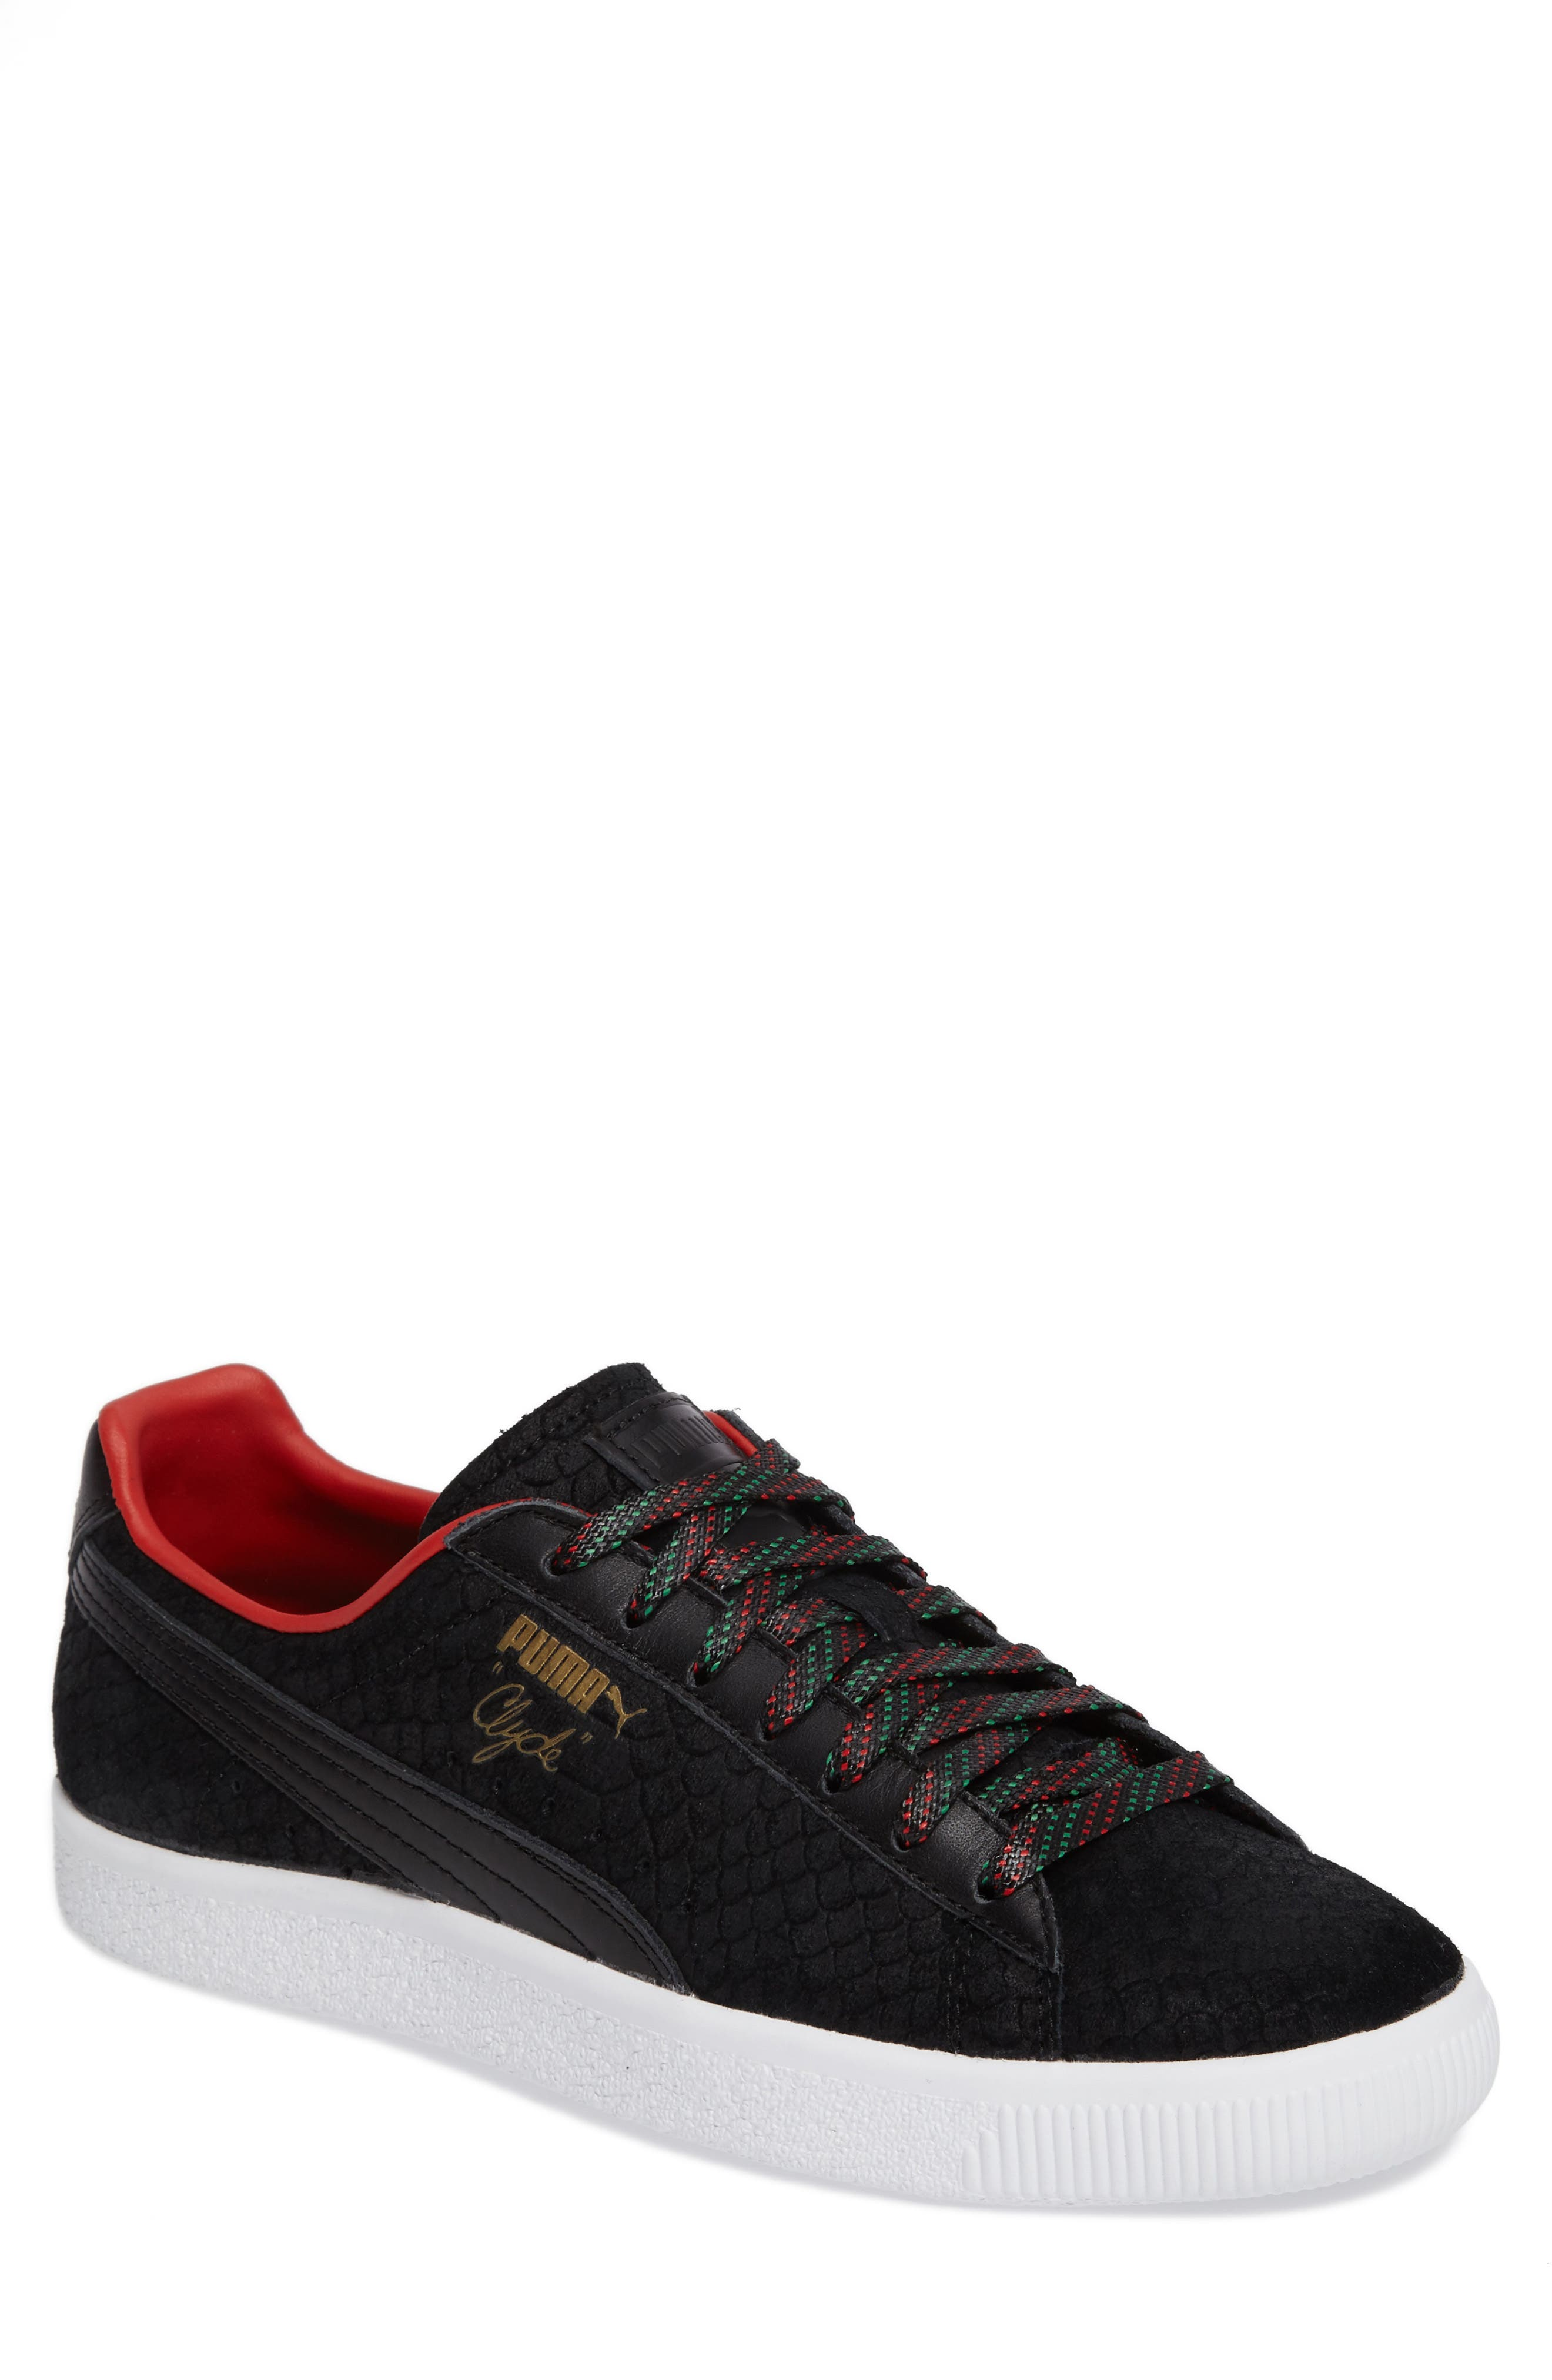 PUMA Clyde GCC Sneaker (Men)